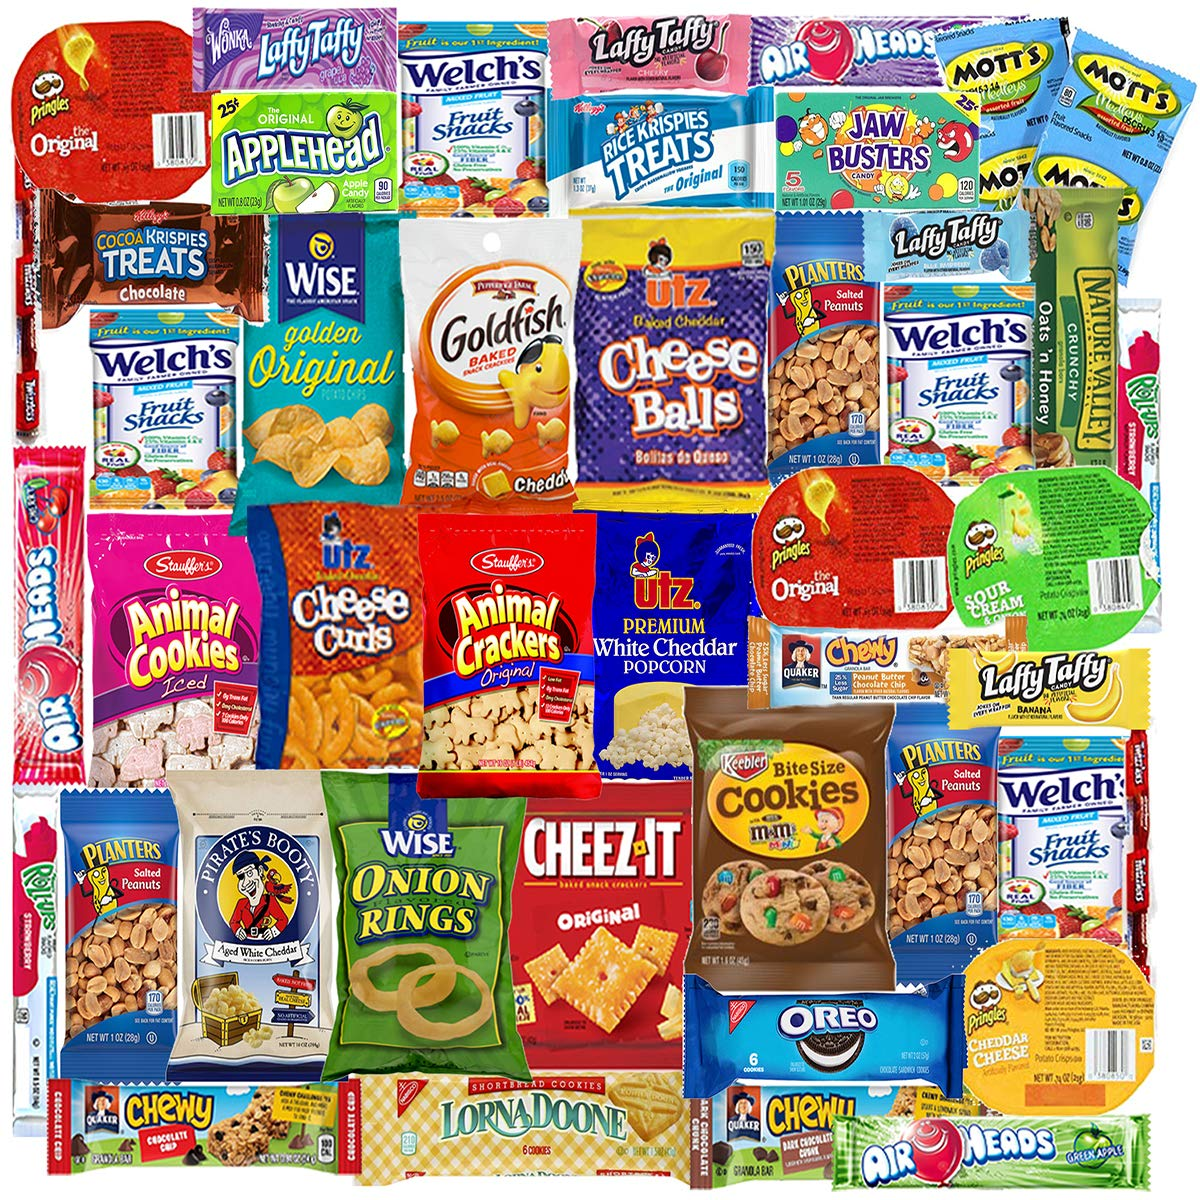 Blue Ribbon Care Package 45 Count Ultimate Sampler Mixed Bars, Cookies, Chips, Candy Snacks Kasten für Office, Meetings, Schools,Friends & Family, Military,College, Halloween, Spaß Variety Pack